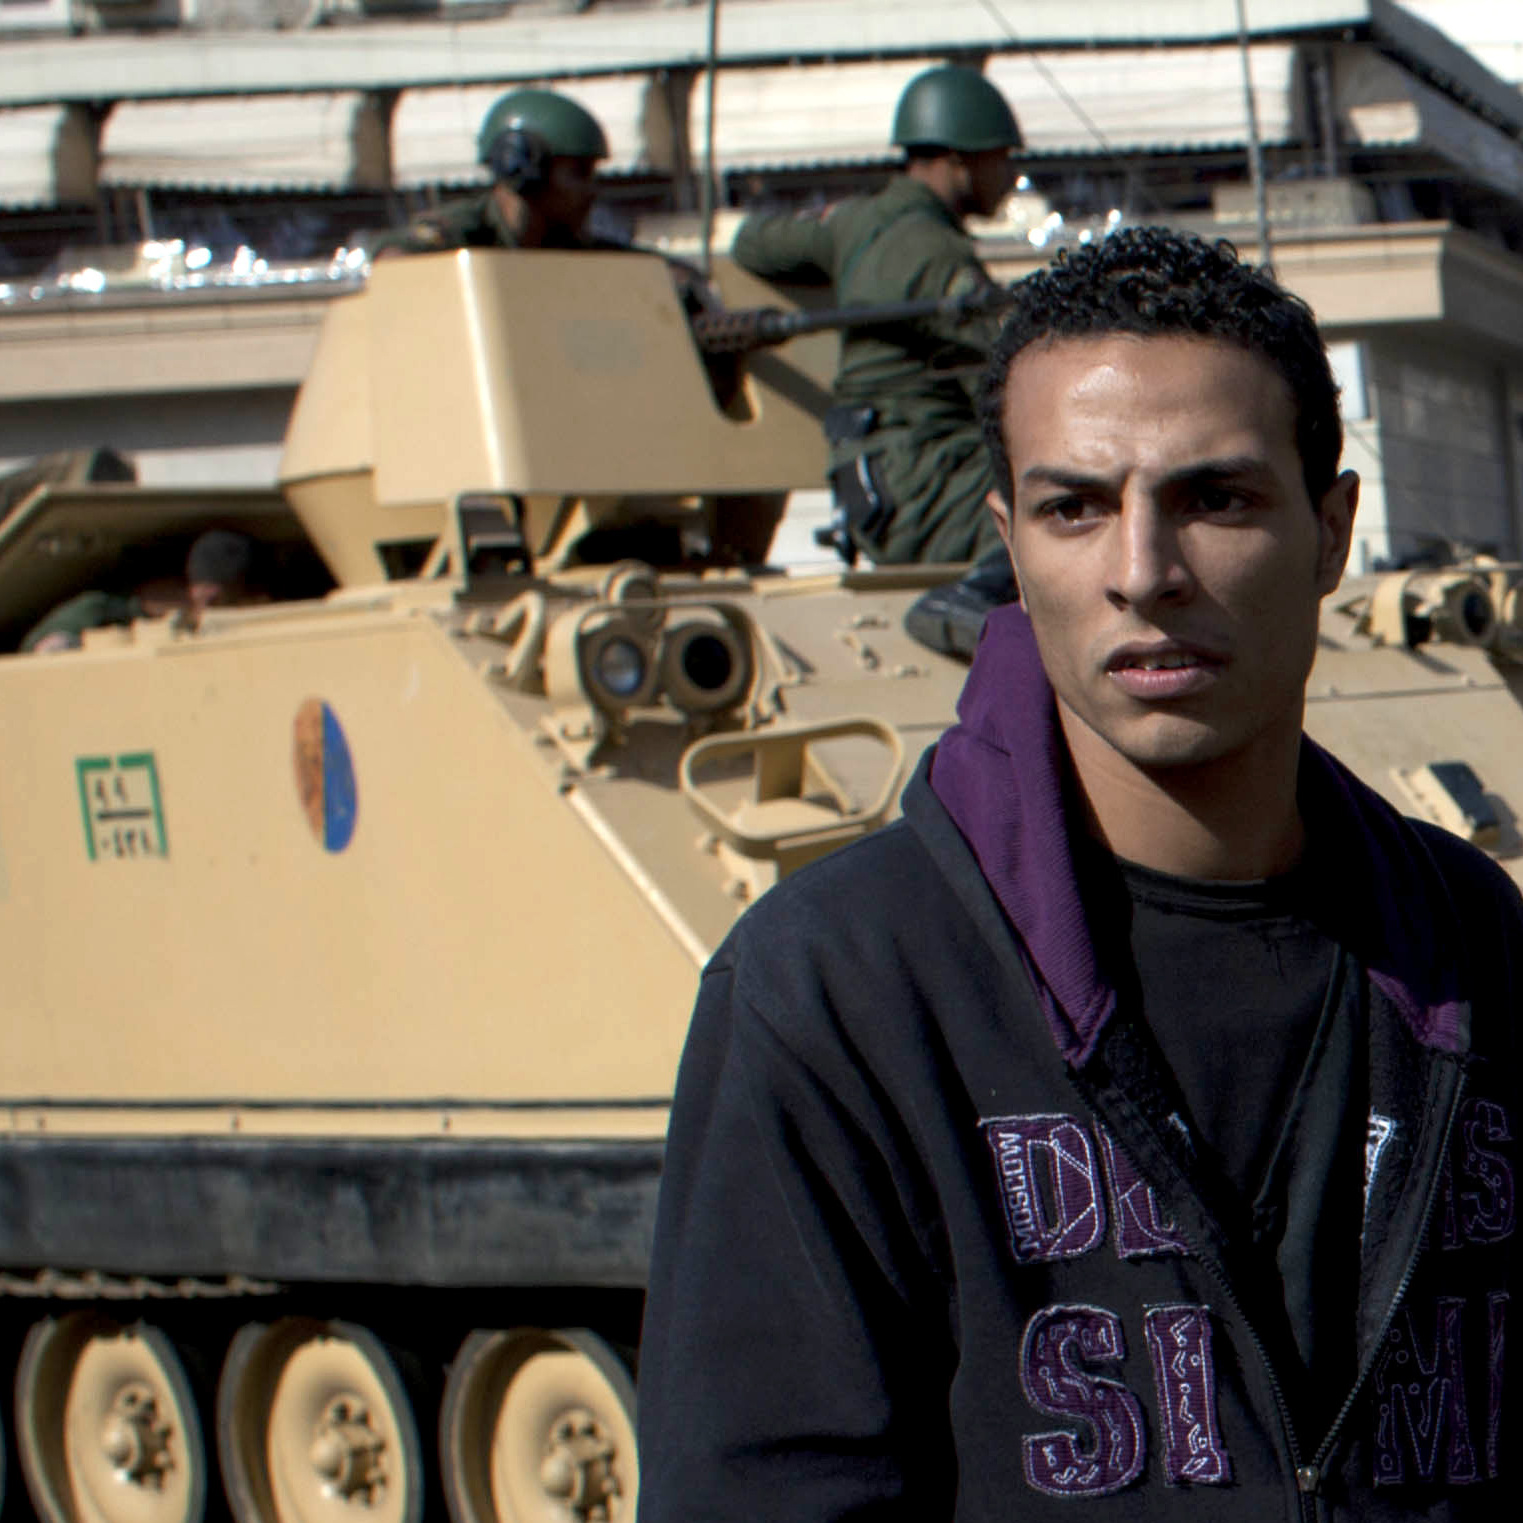 Egyptian army tanks deploy near the presidential palace after overnight clashes between supporters and opponents of President Mohammed Morsi in Cairo on Thursday.